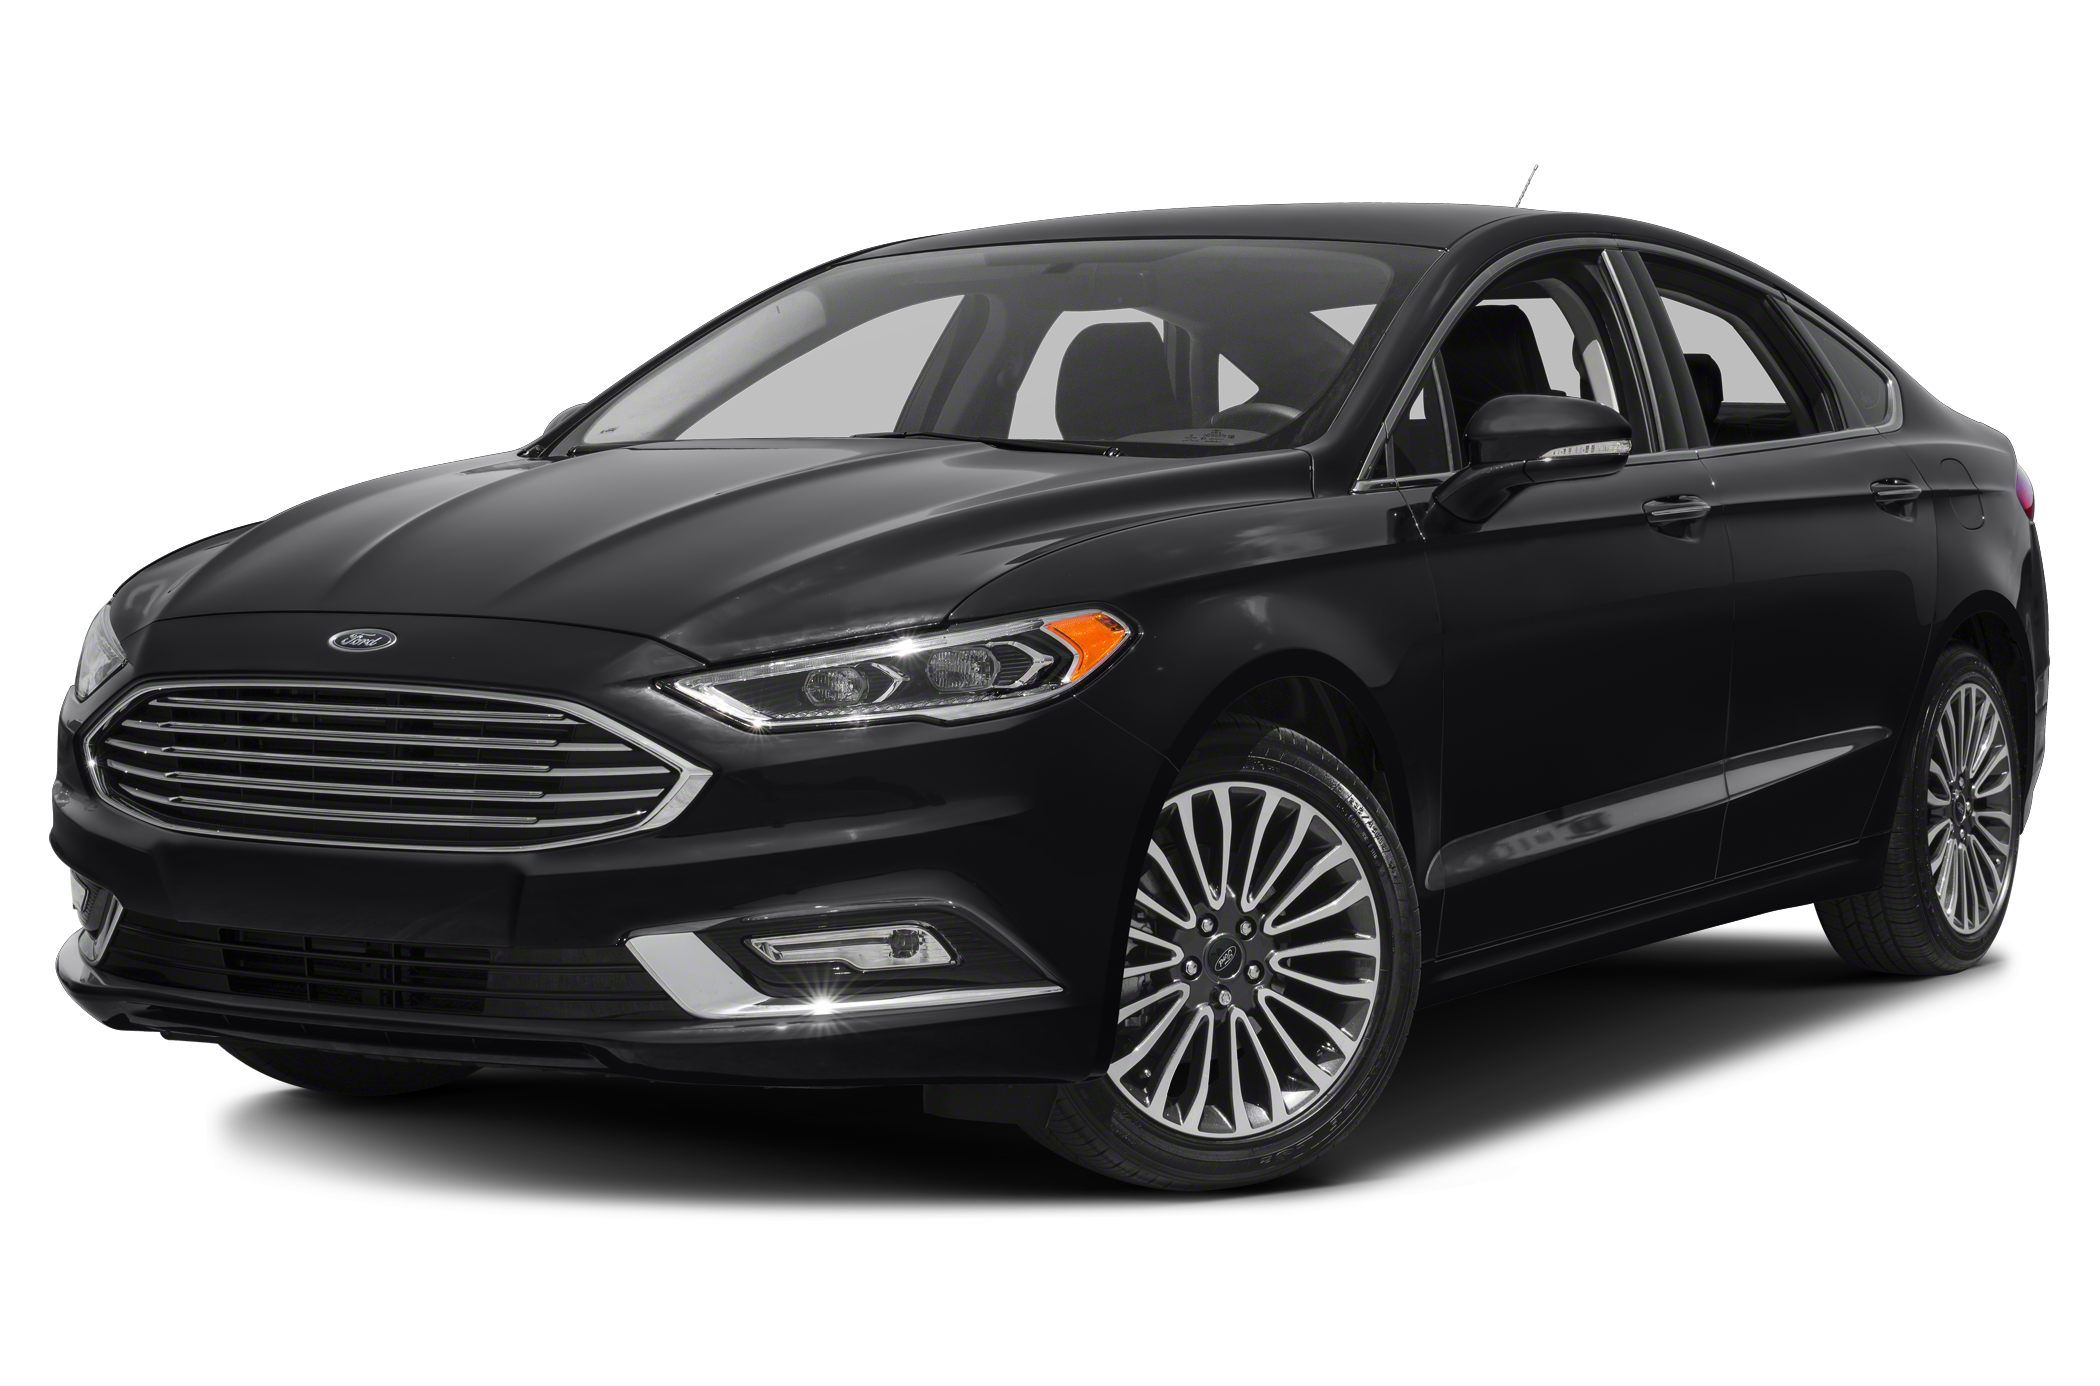 Awesome Ford Fusion Aston Martin In 2020 Ford Fusion Ford